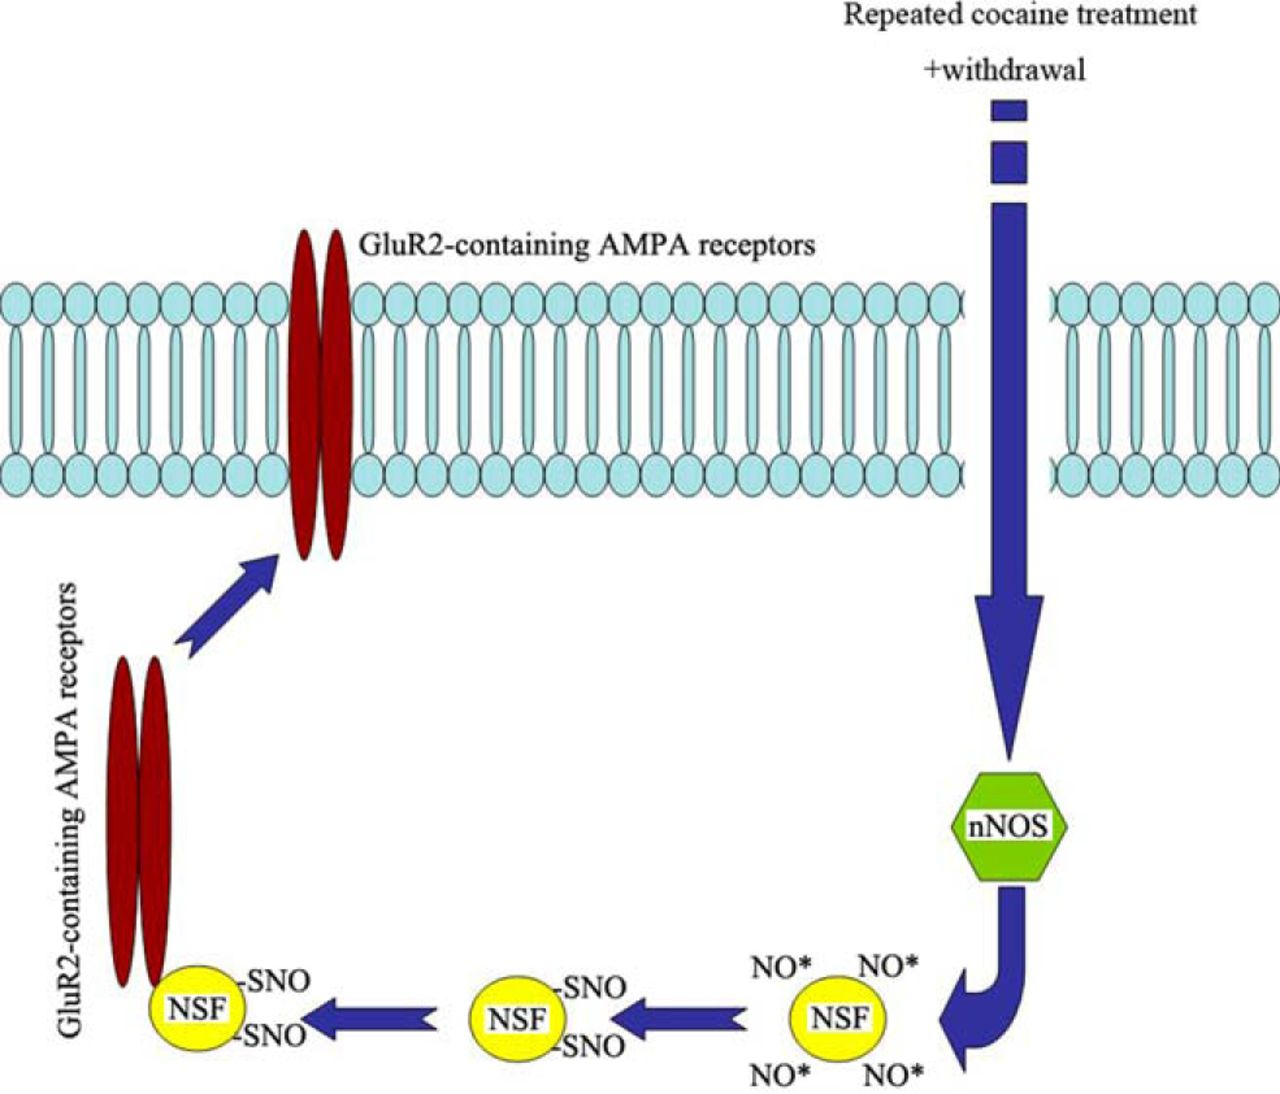 Interactions between N-Ethylmaleimide-Sensitive Factor and